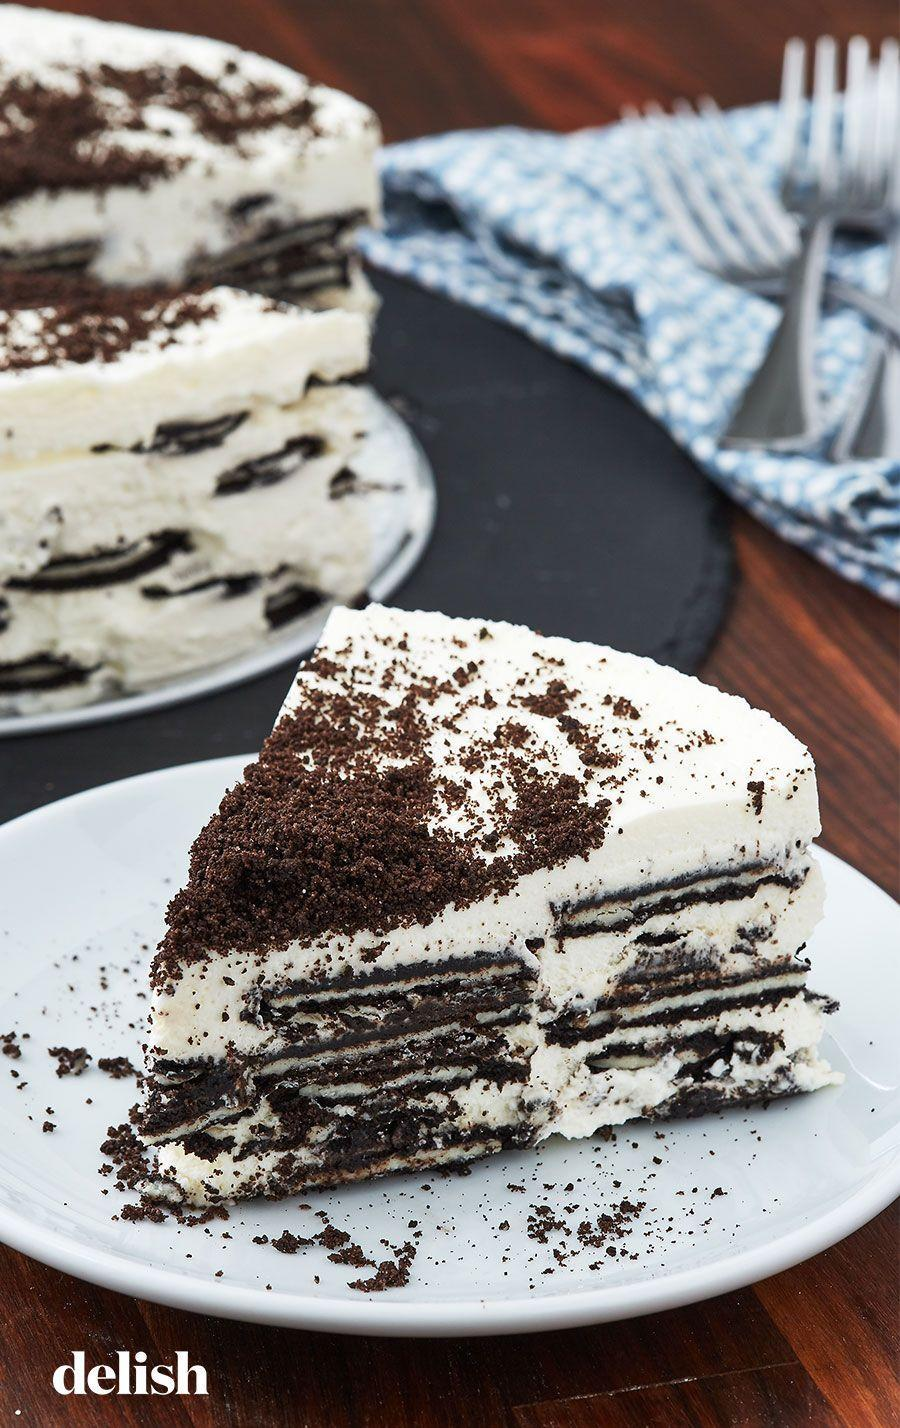 "<p>Only four ingredients. Yes, really.</p><p>Get the recipe from <a href=""https://www.delish.com/cooking/recipe-ideas/a27469997/icebox-cake-recipe/"" rel=""nofollow noopener"" target=""_blank"" data-ylk=""slk:Delish"" class=""link rapid-noclick-resp"">Delish</a>.</p>"